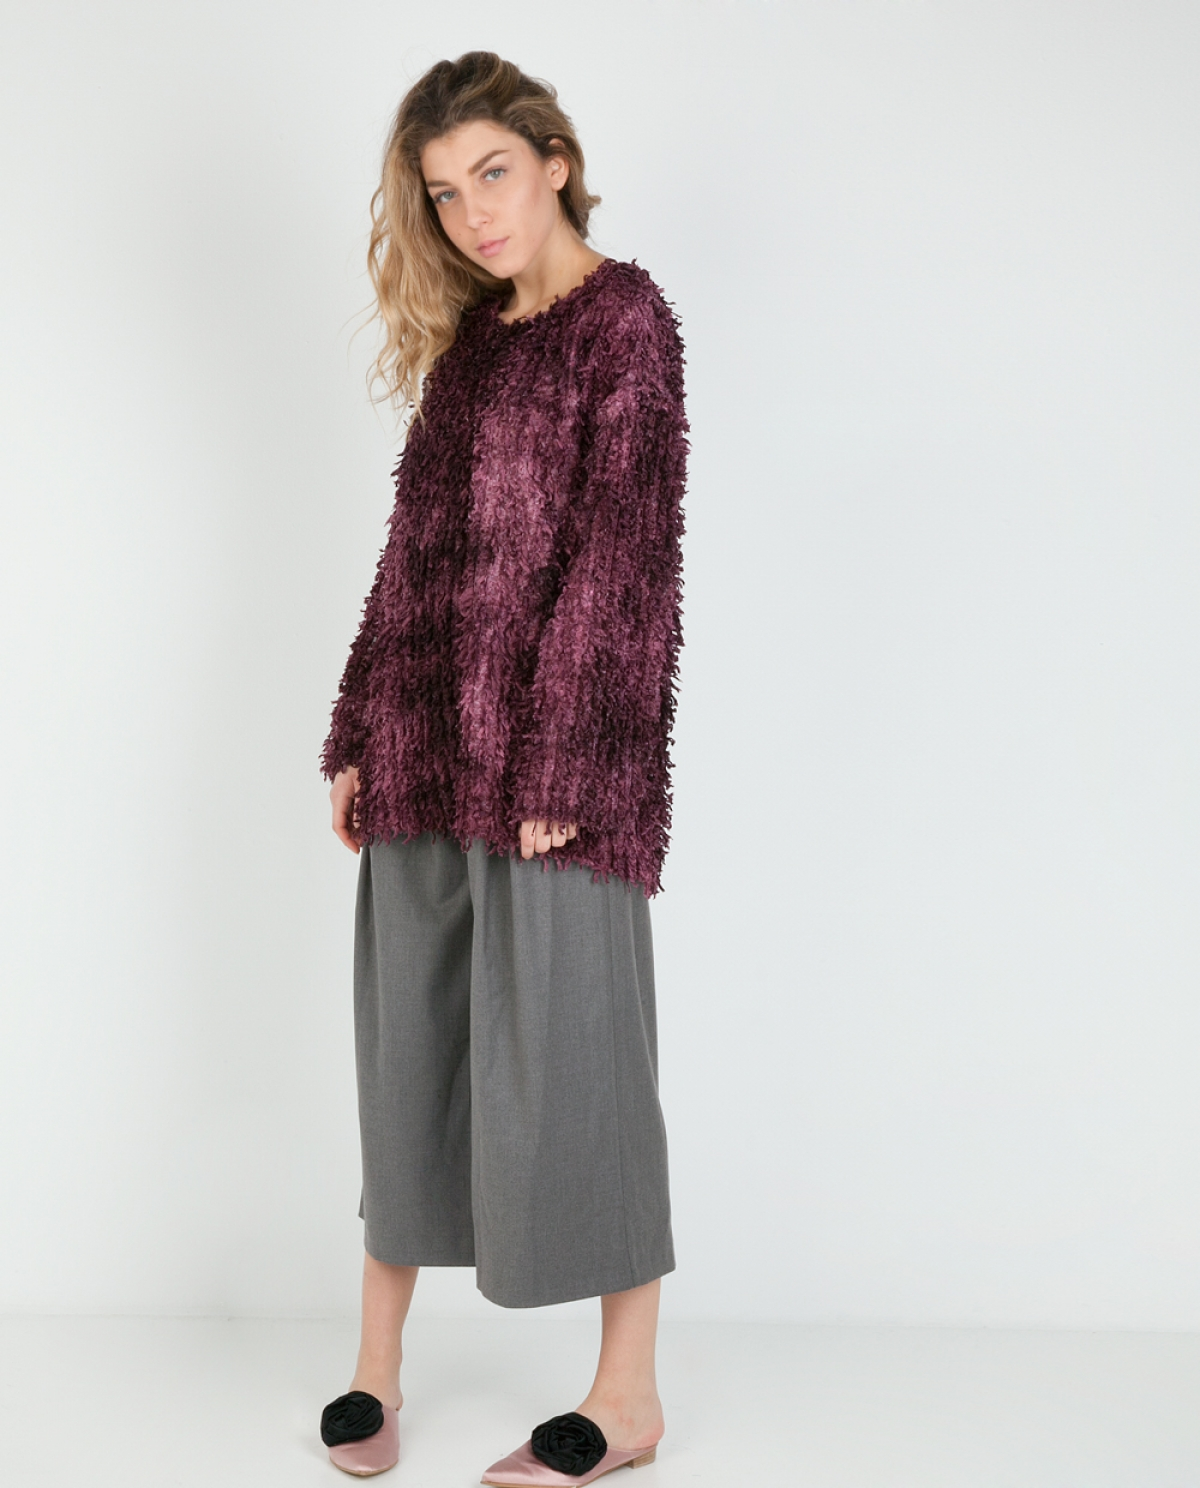 Nightgale Fringe-trimmed Sweater